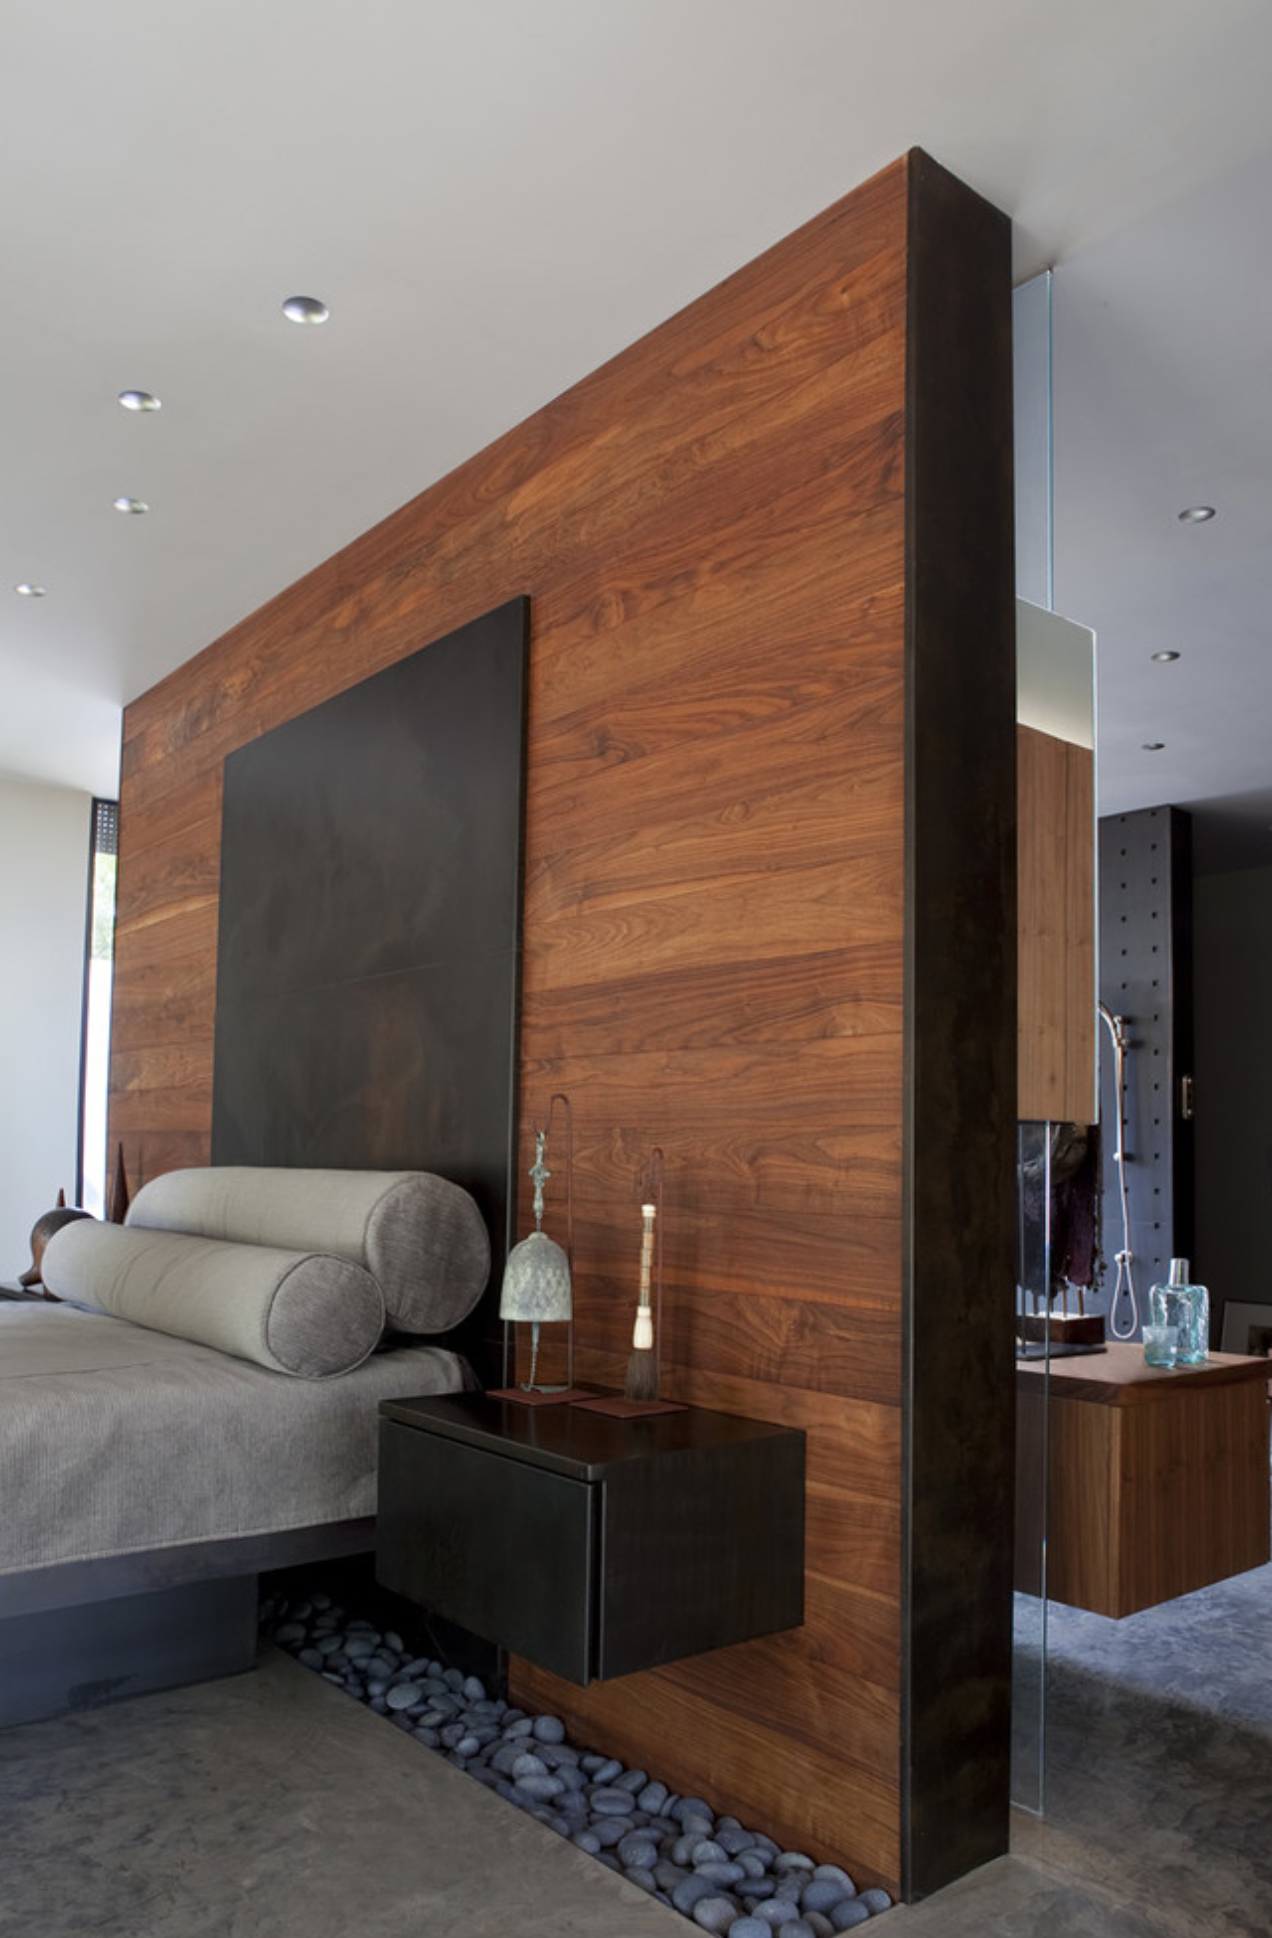 Https://chloeelan.com/smart Open Concept Bathroom Ideas For Balancing Privacy With Openness/integrated Master Bed And Night Stand Float Off A Walnut Clad   ...